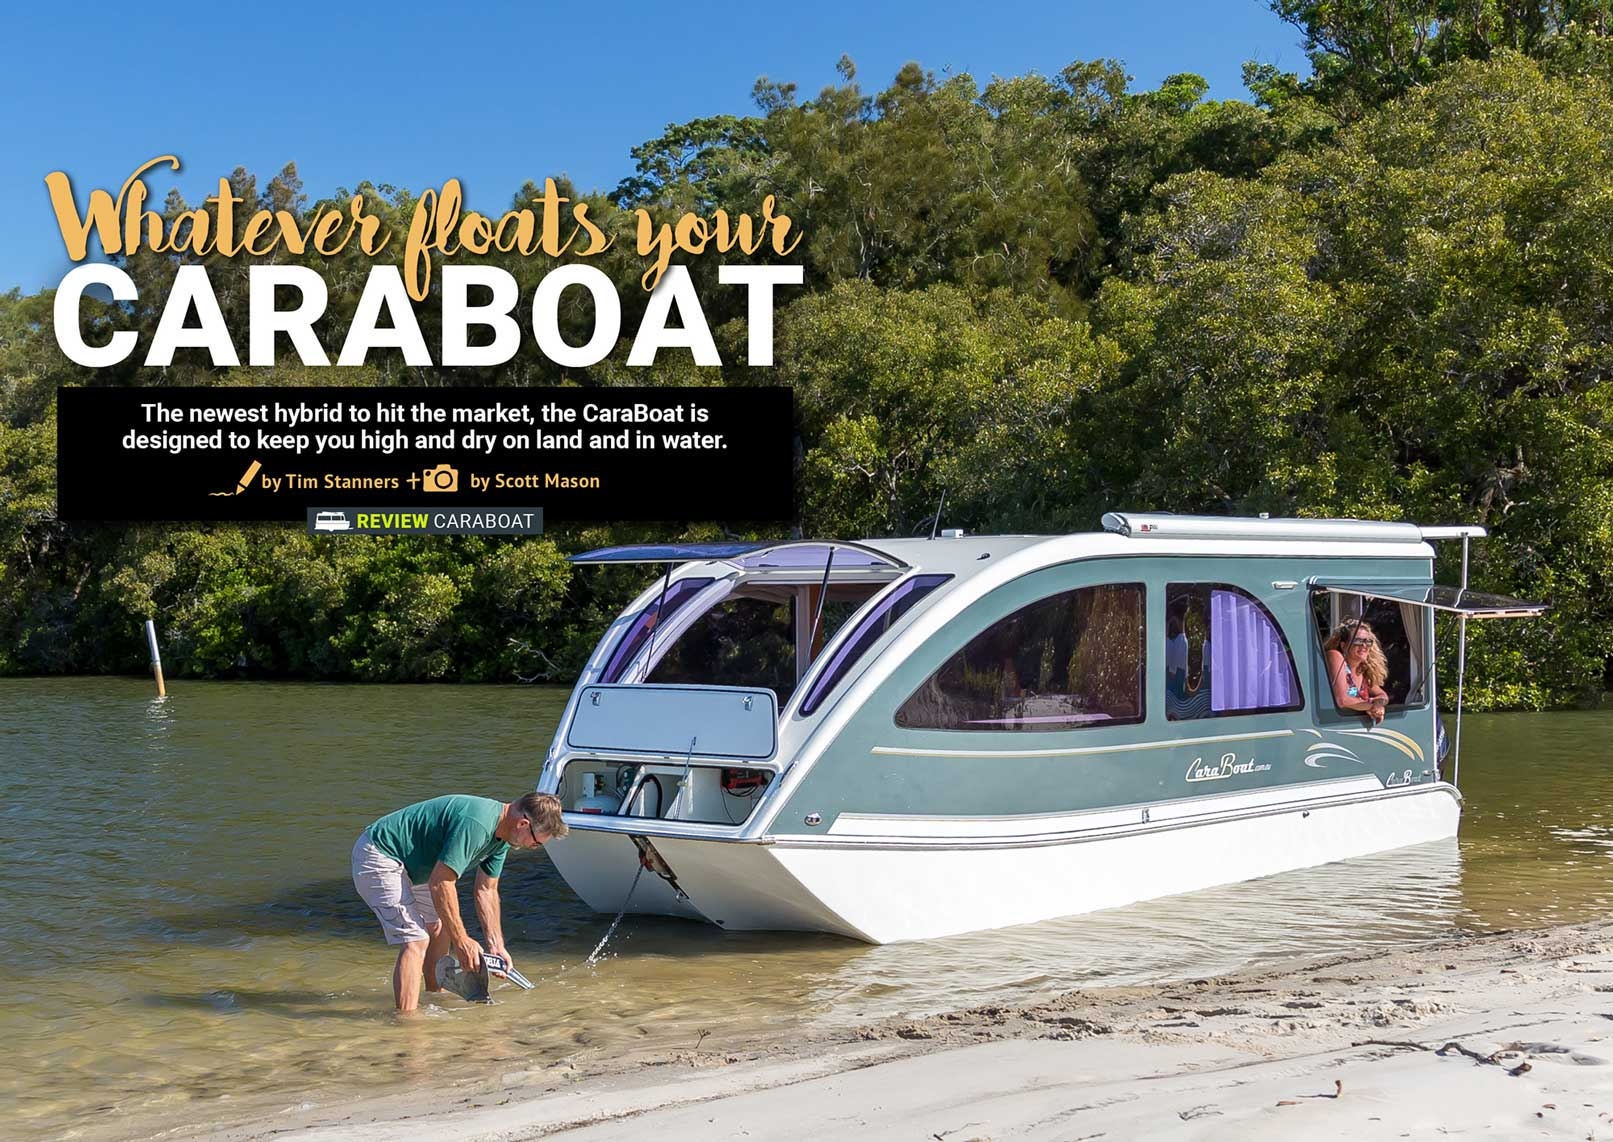 The CaraBoat – a hybrid design for land and water